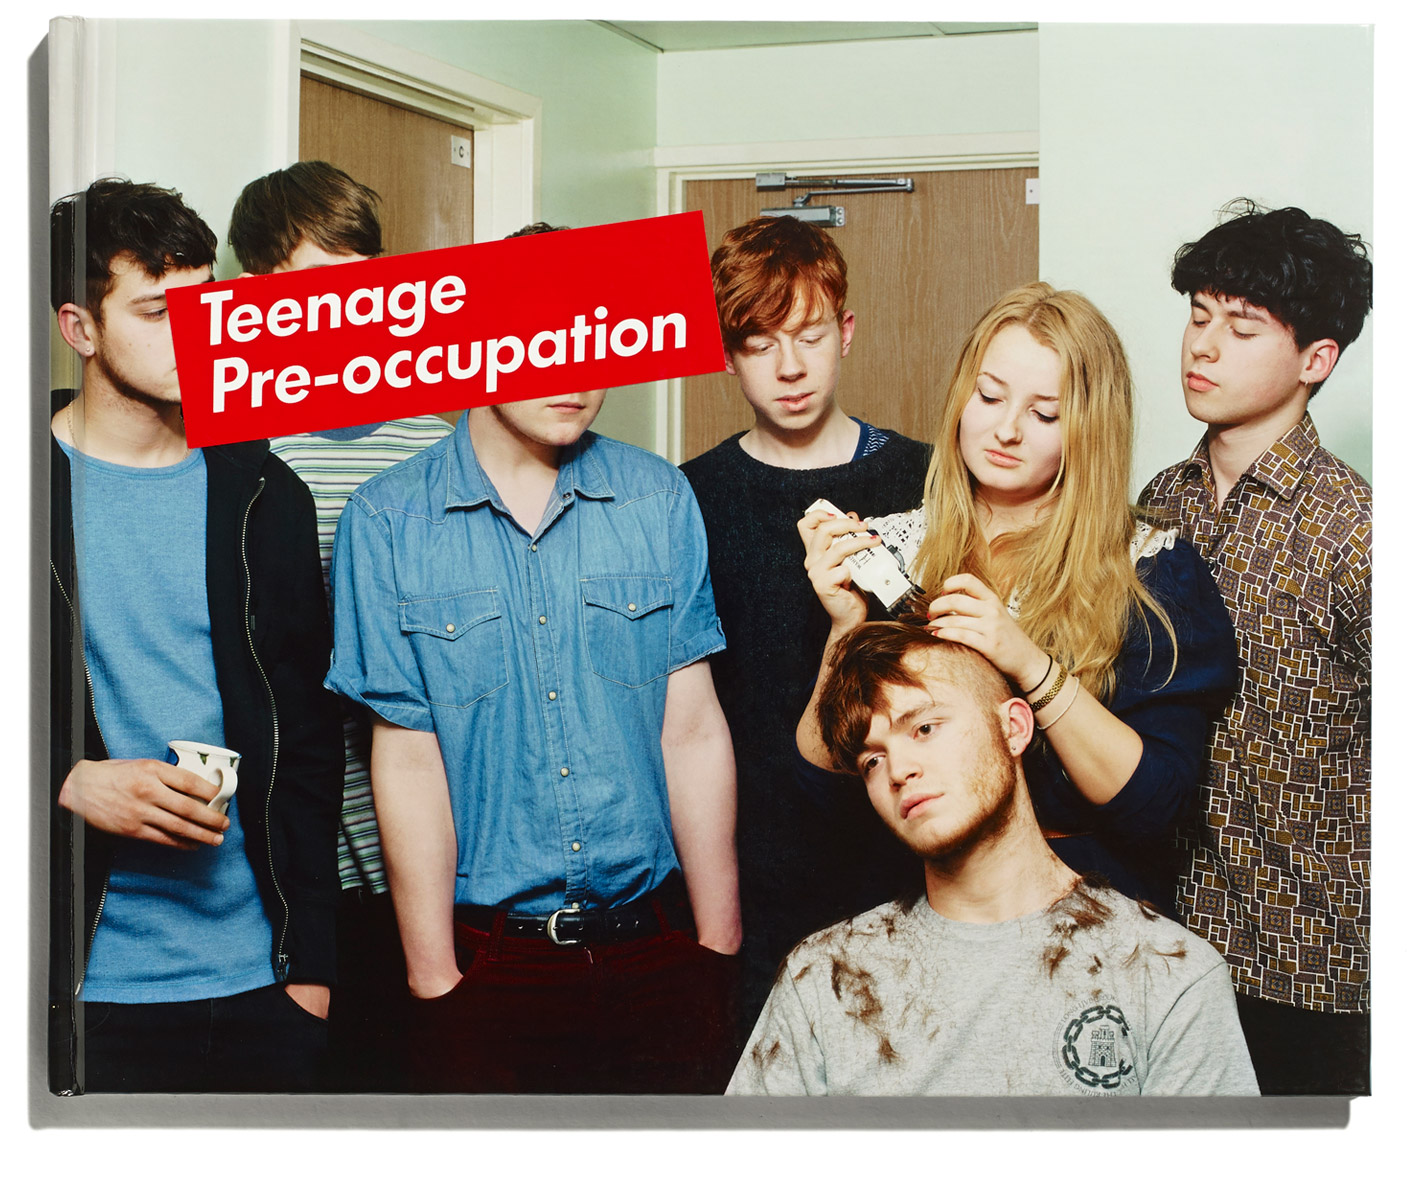 Teenage Pre-occupation, David Stewart, published by Browns Editions, designed by Browns Design